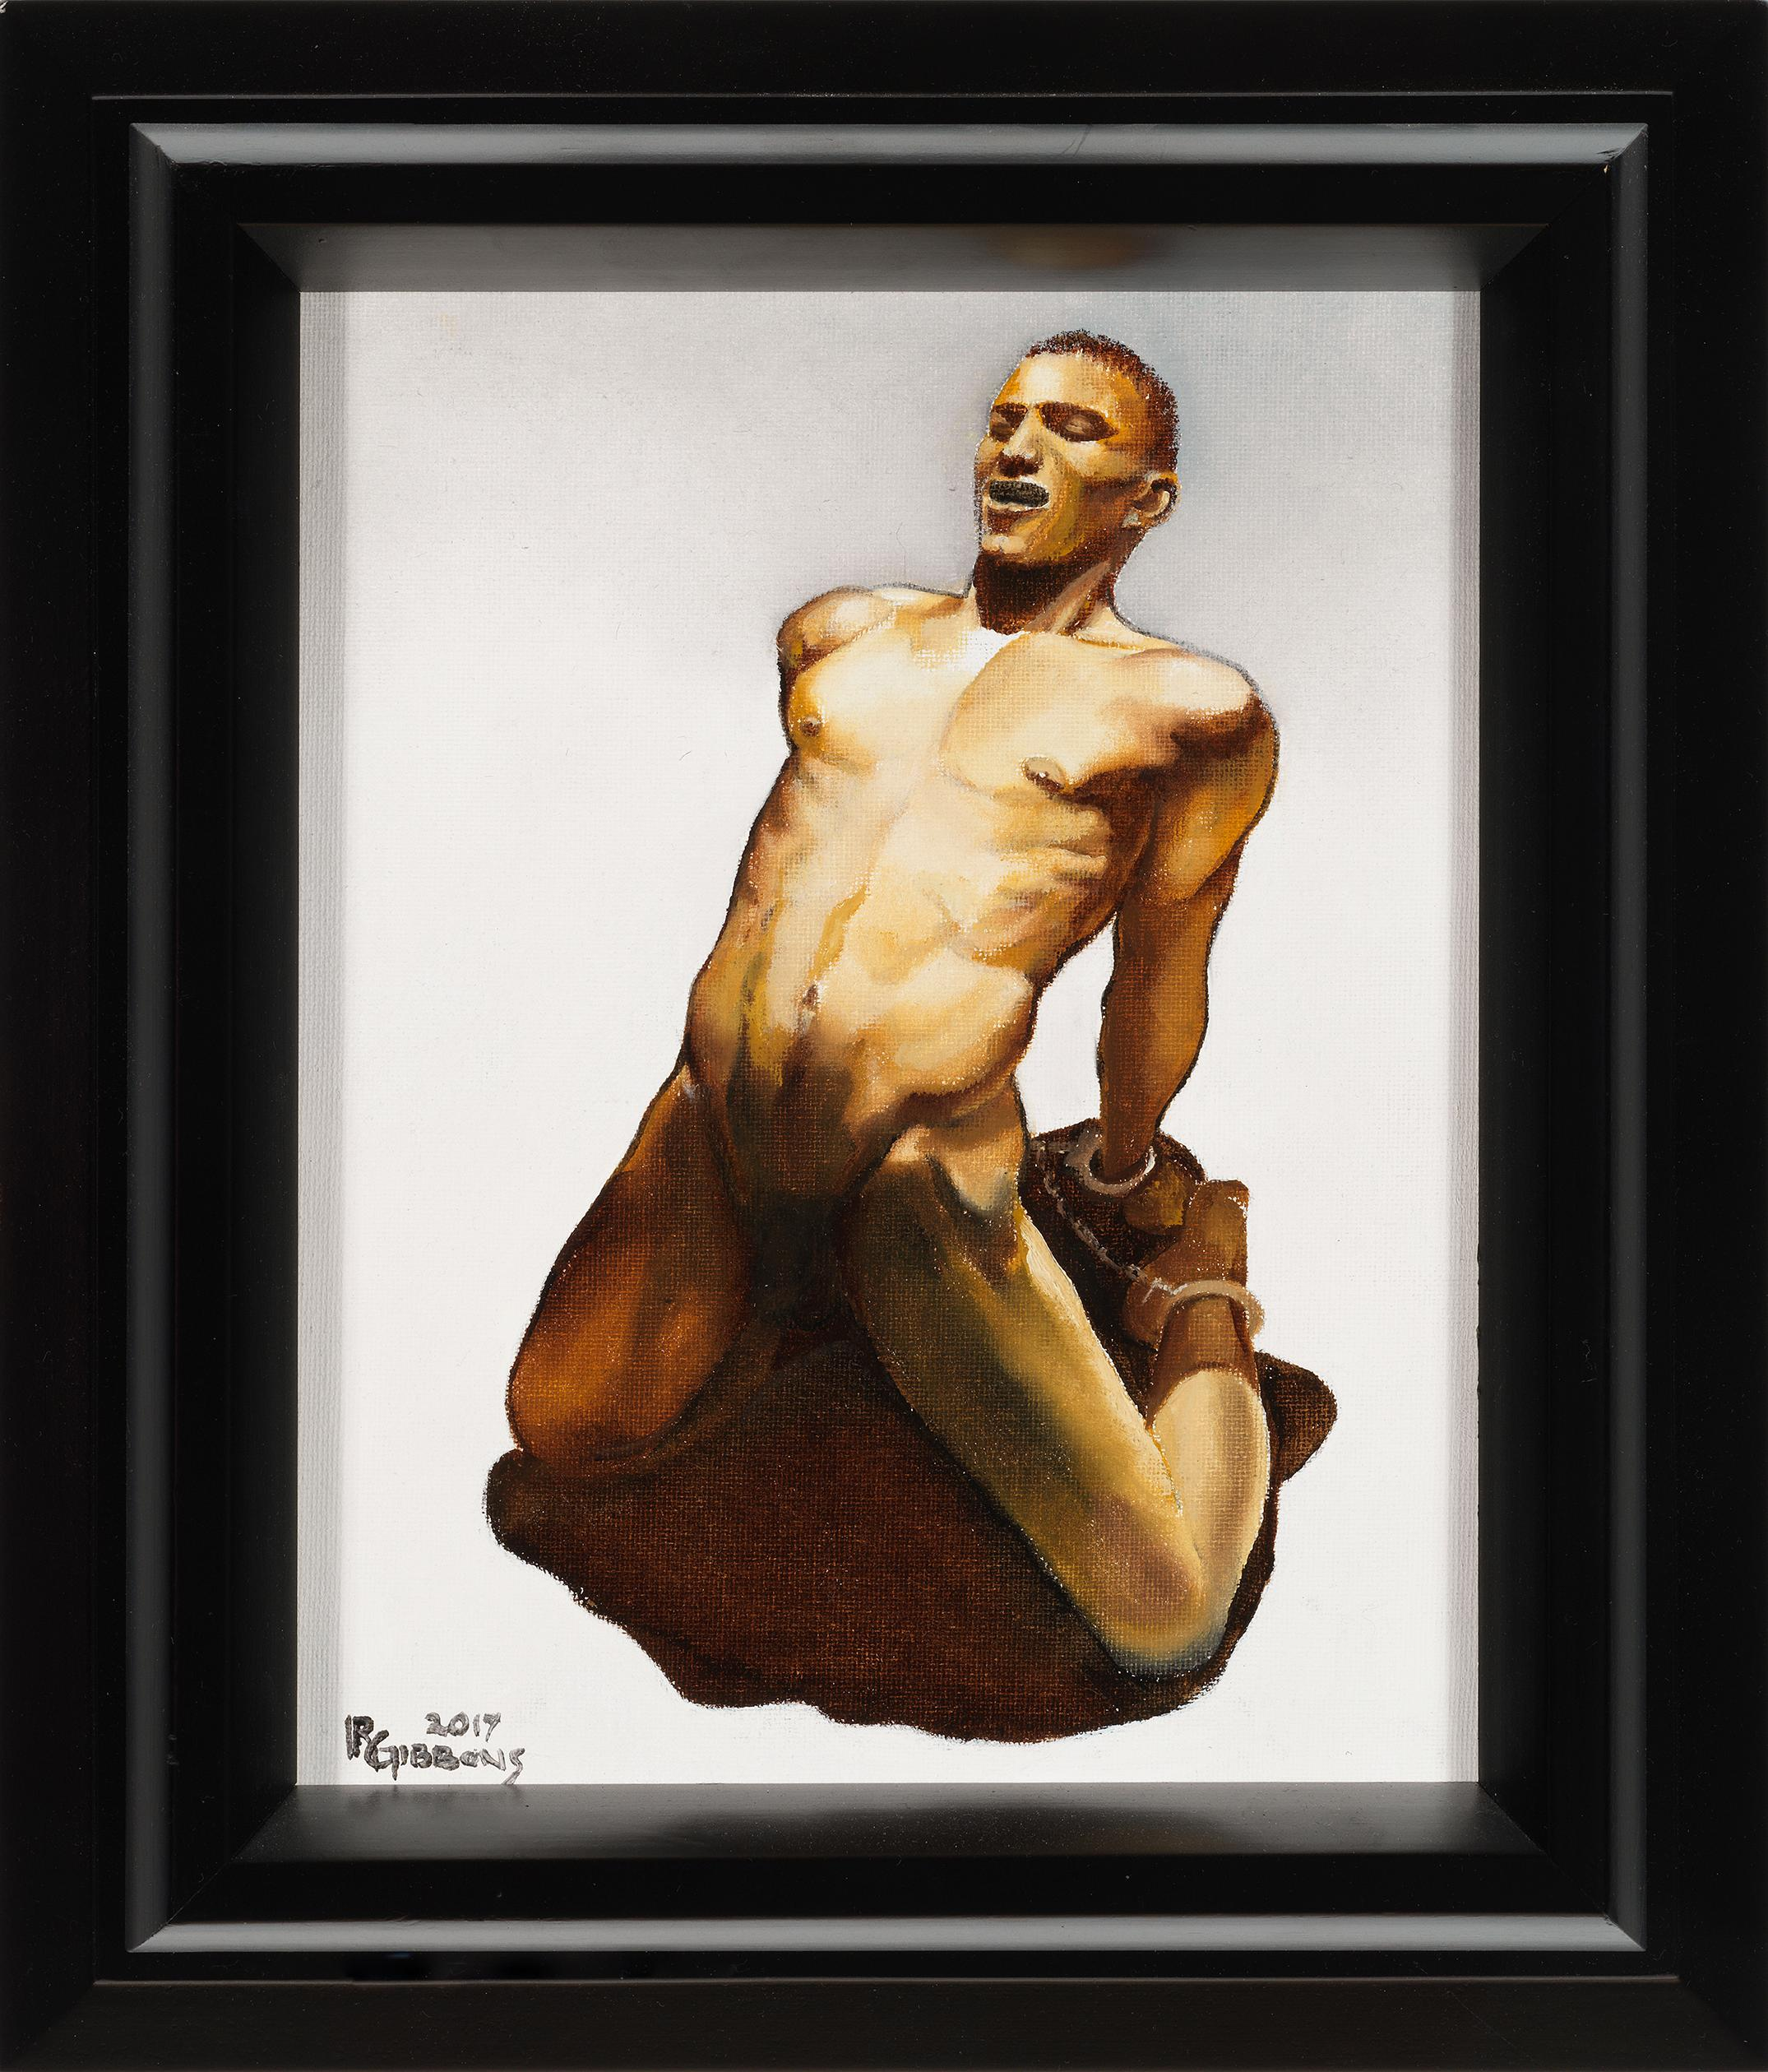 Trapped By His Own Shadow, Bound Nude Male Figure, Original Oil Painting, Framed